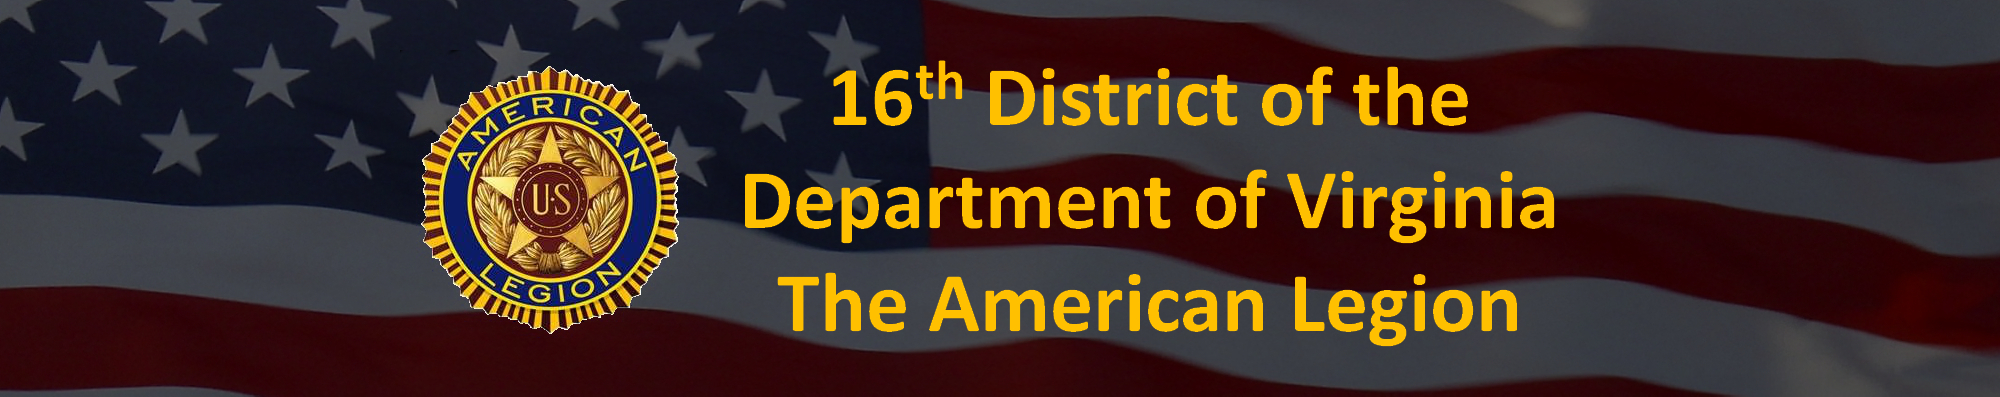 Virginia 16th District – The American Legion